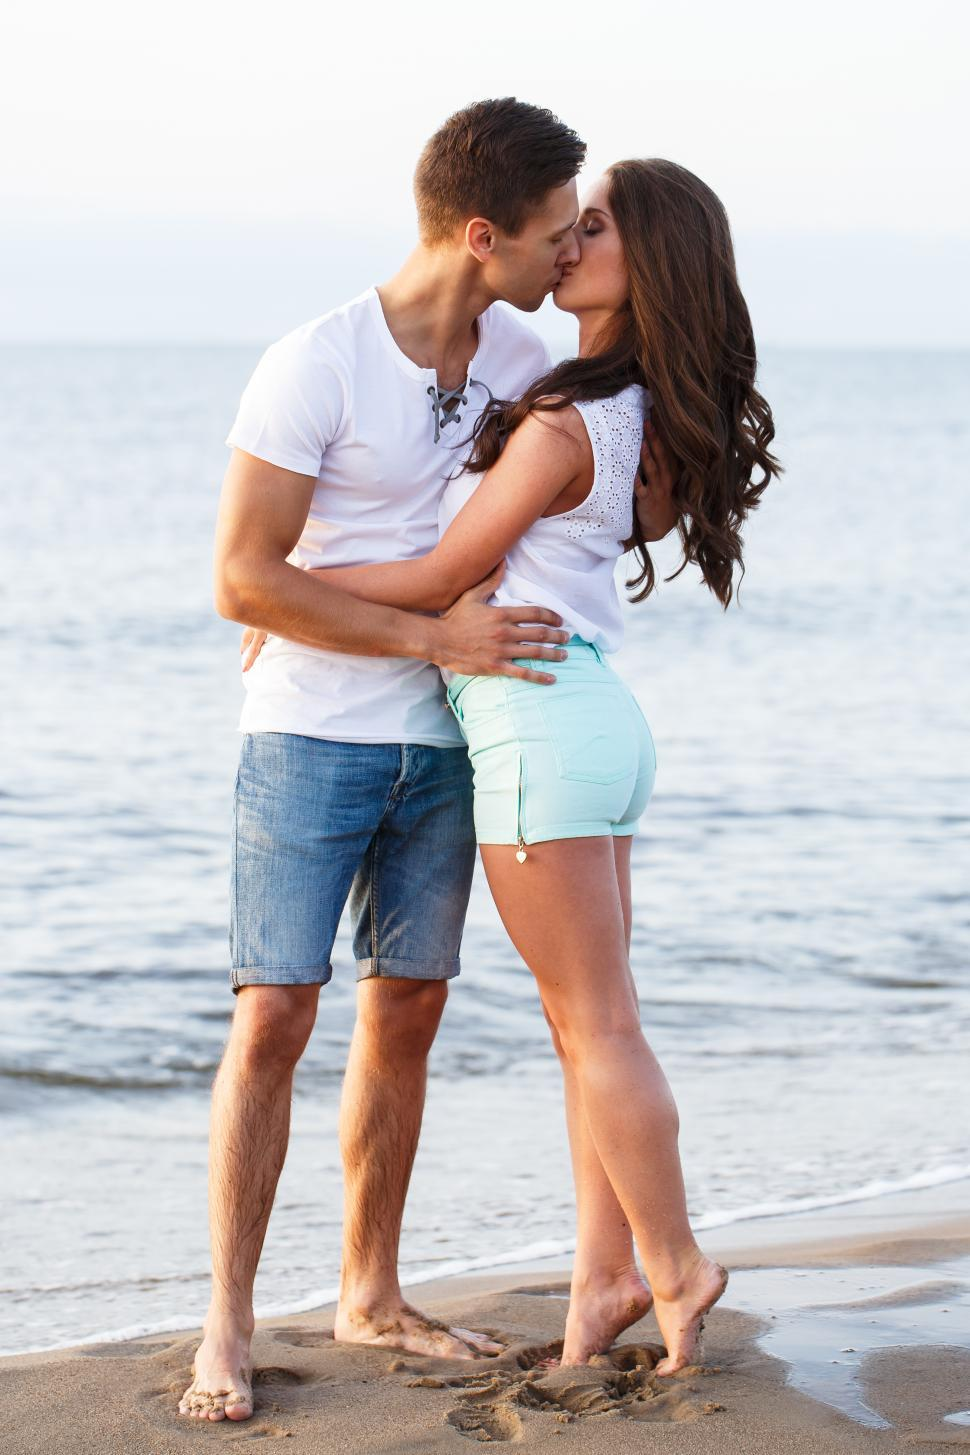 Download Free Stock HD Photo of A kiss on the beach Online